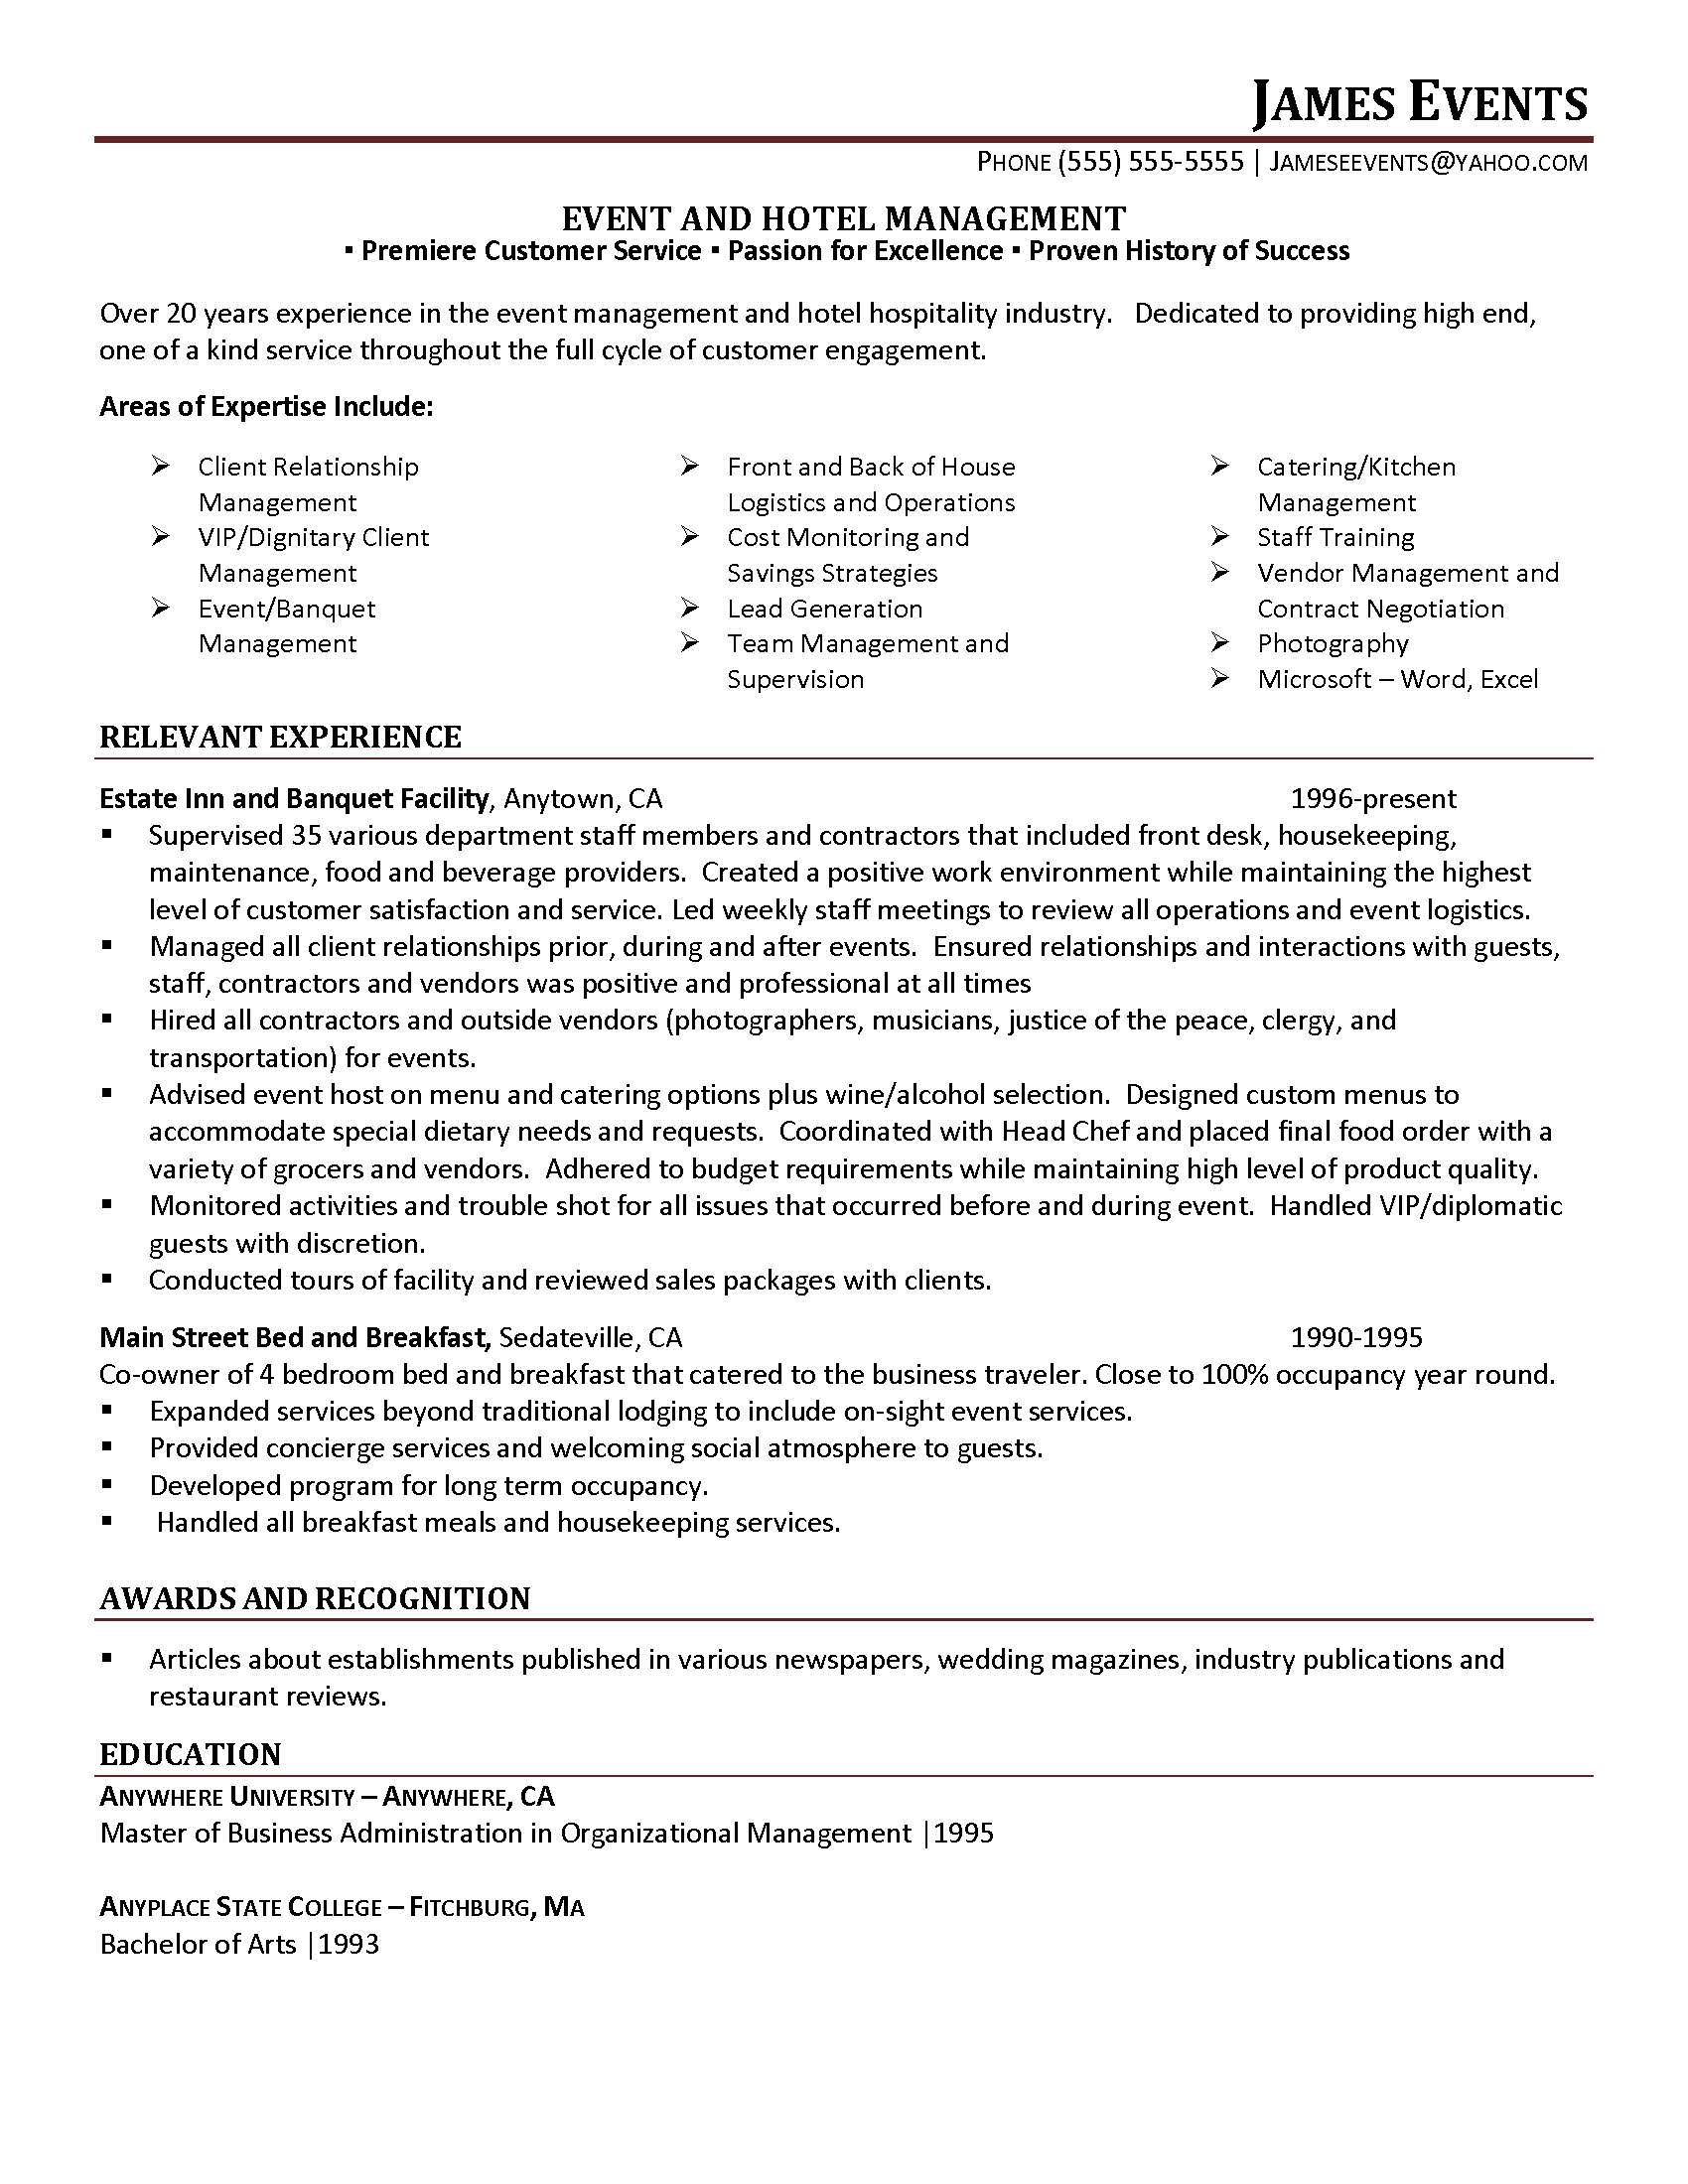 Project Coordinator Resume INPIEQ Sales Coordinator Resume Sample Human  Resources Coordinator Resume Sales Coordinator Resume Sample  Event Planner Resume Objective